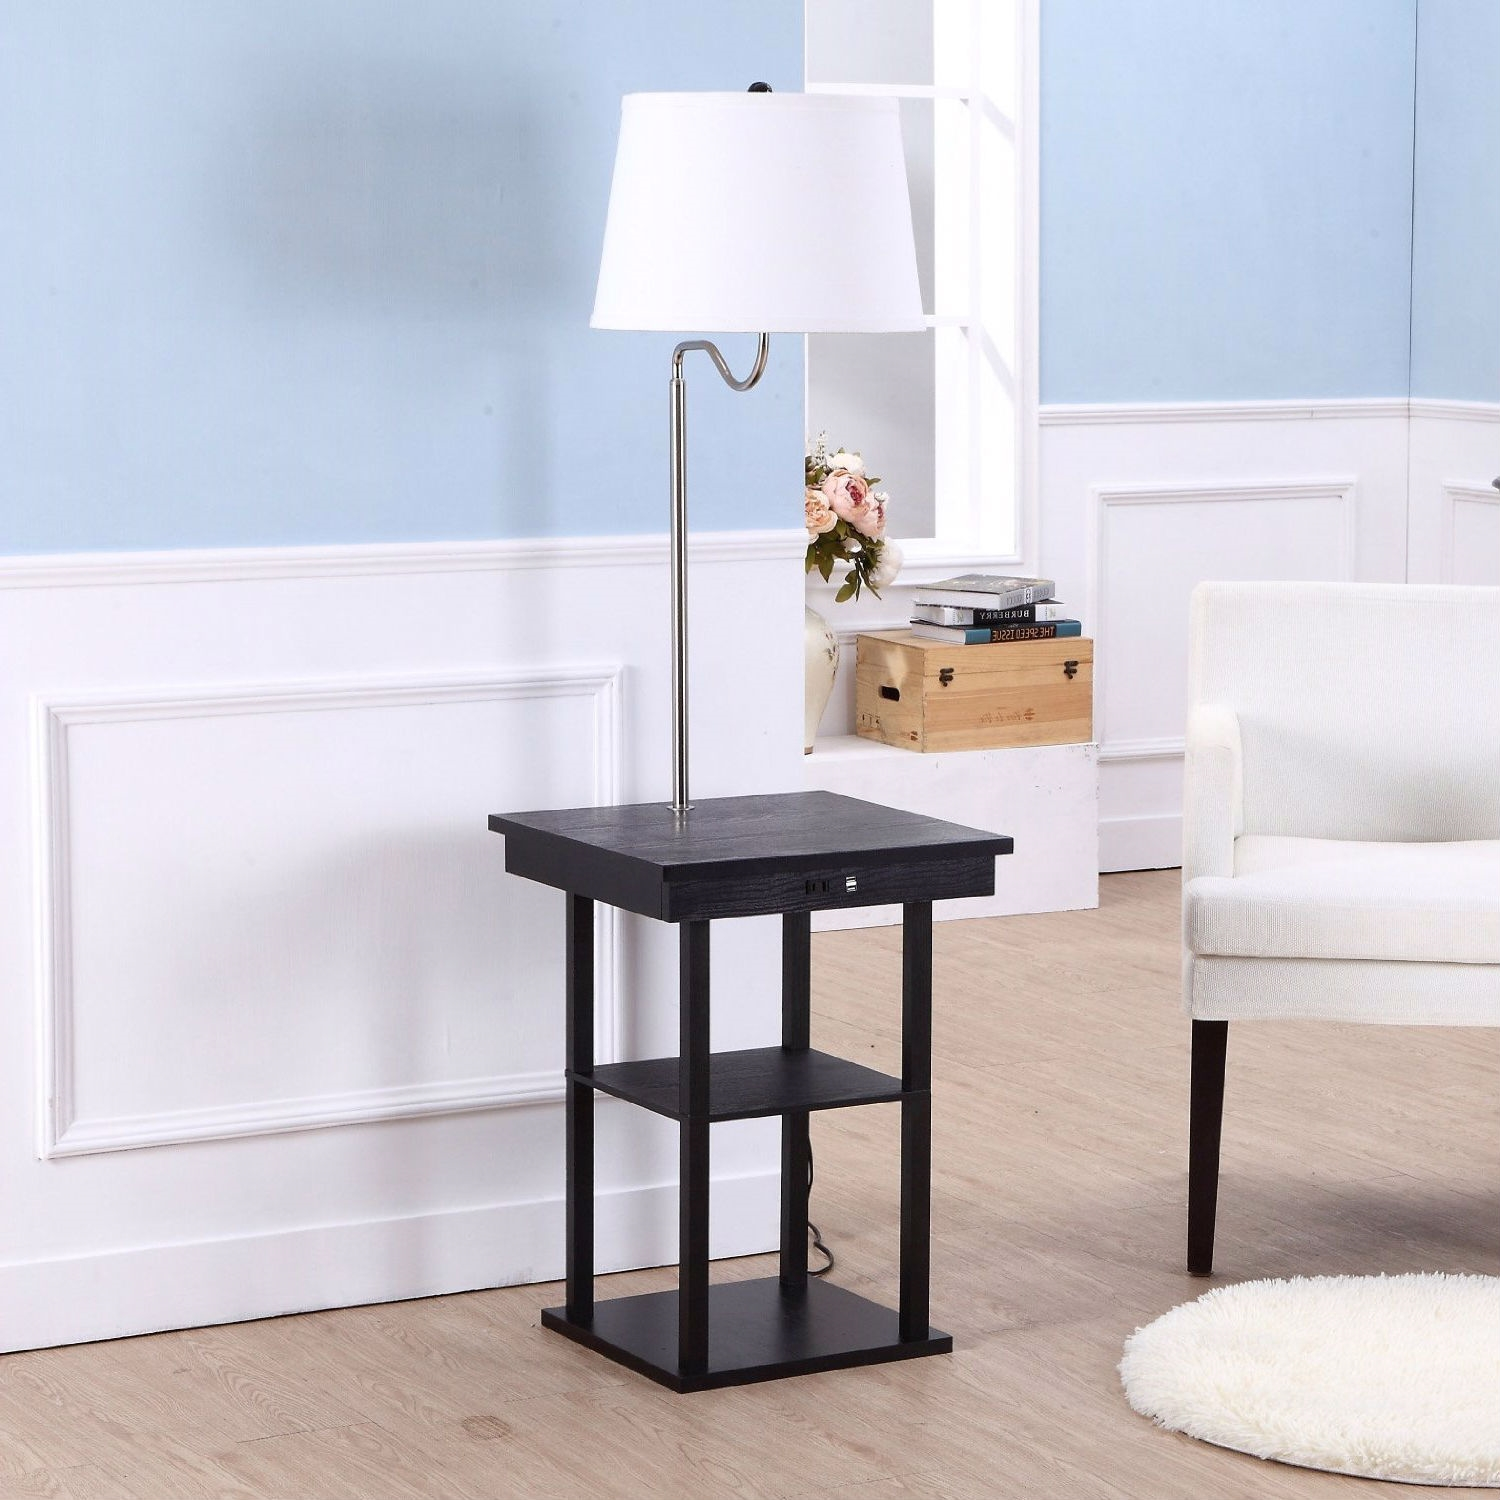 2-in1 Modern Side Table Floor Lamp with White Shade and USB Ports ...